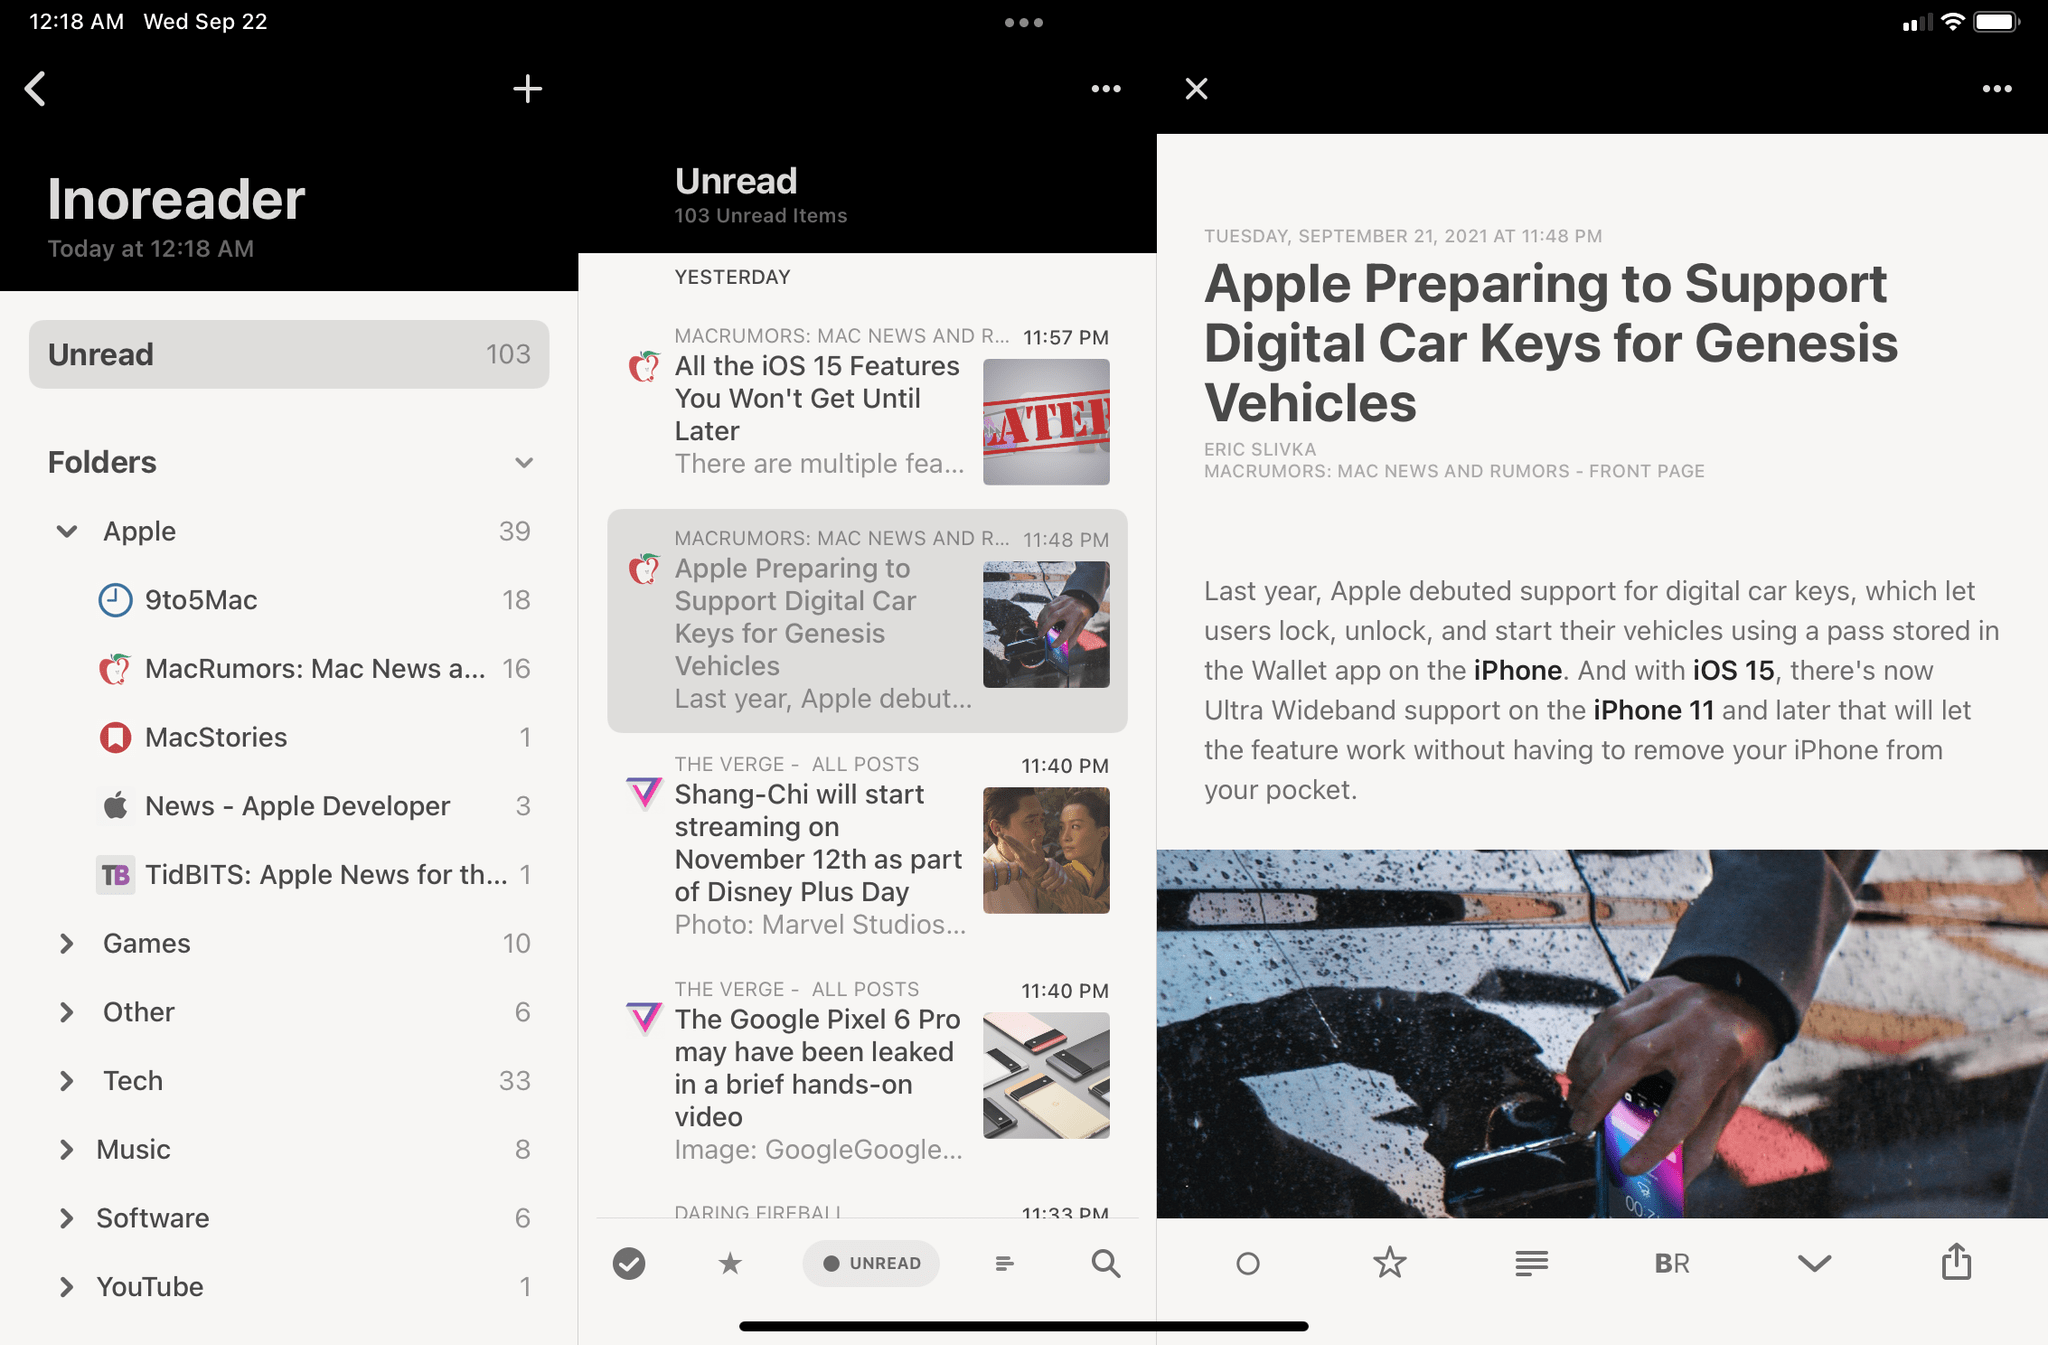 In the same app on the new iPad mini, the wider form factor makes multi-column layouts better optimized for a widescreen UI. However, you see fewer articles in the middle column due to the shorter display. In this case, you can also see how Reeder can enforce a three-column layout on the mini.